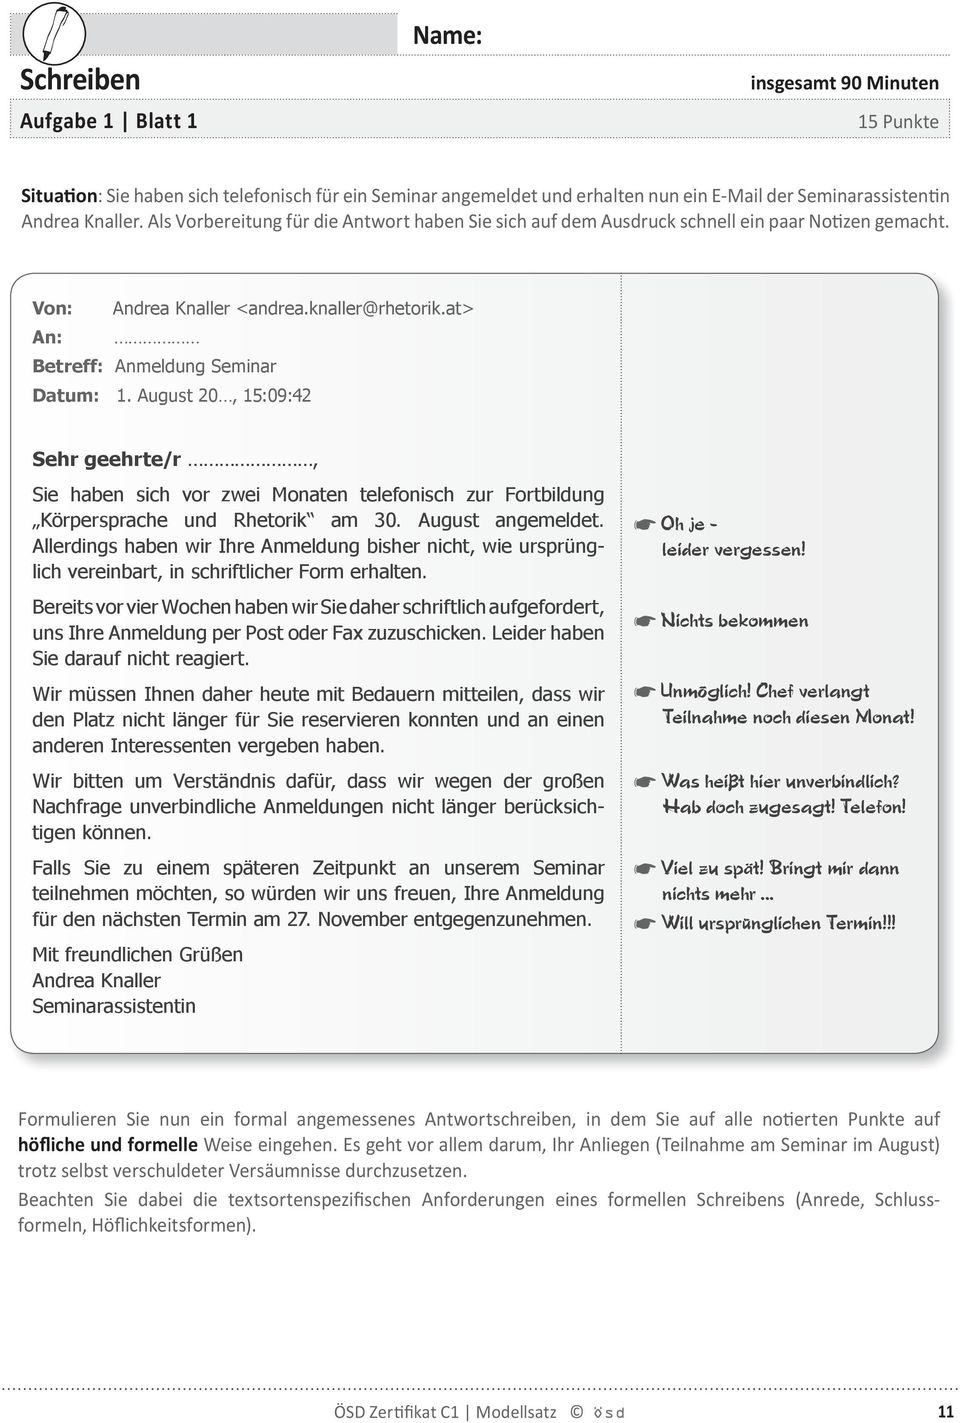 formelle email anfang